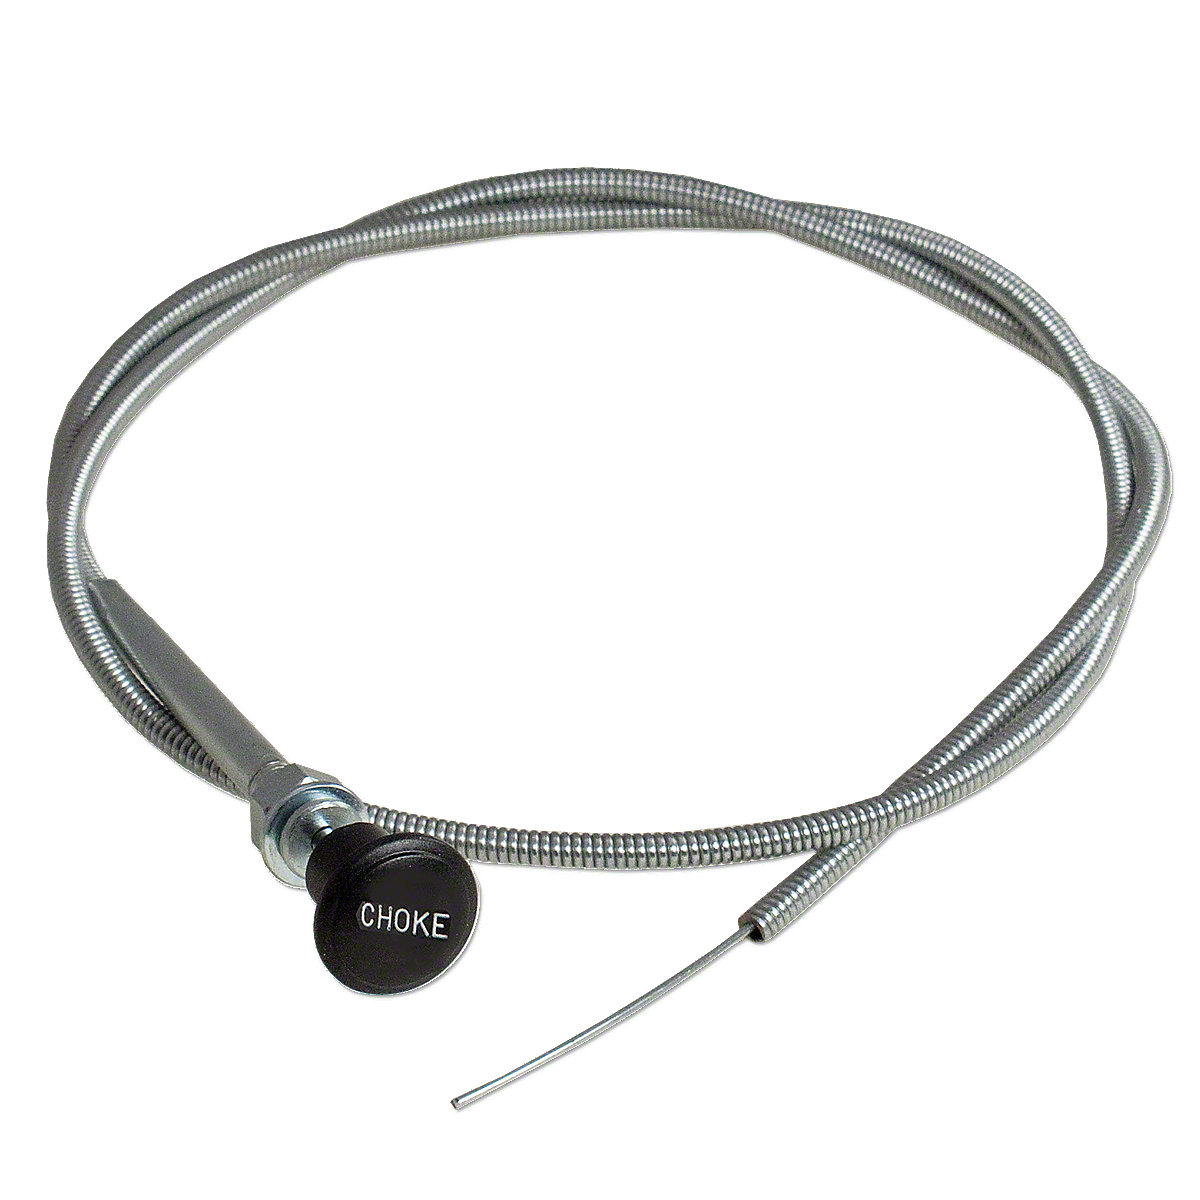 47 Universal Choke Cable For Allis Chalmers Tractors.